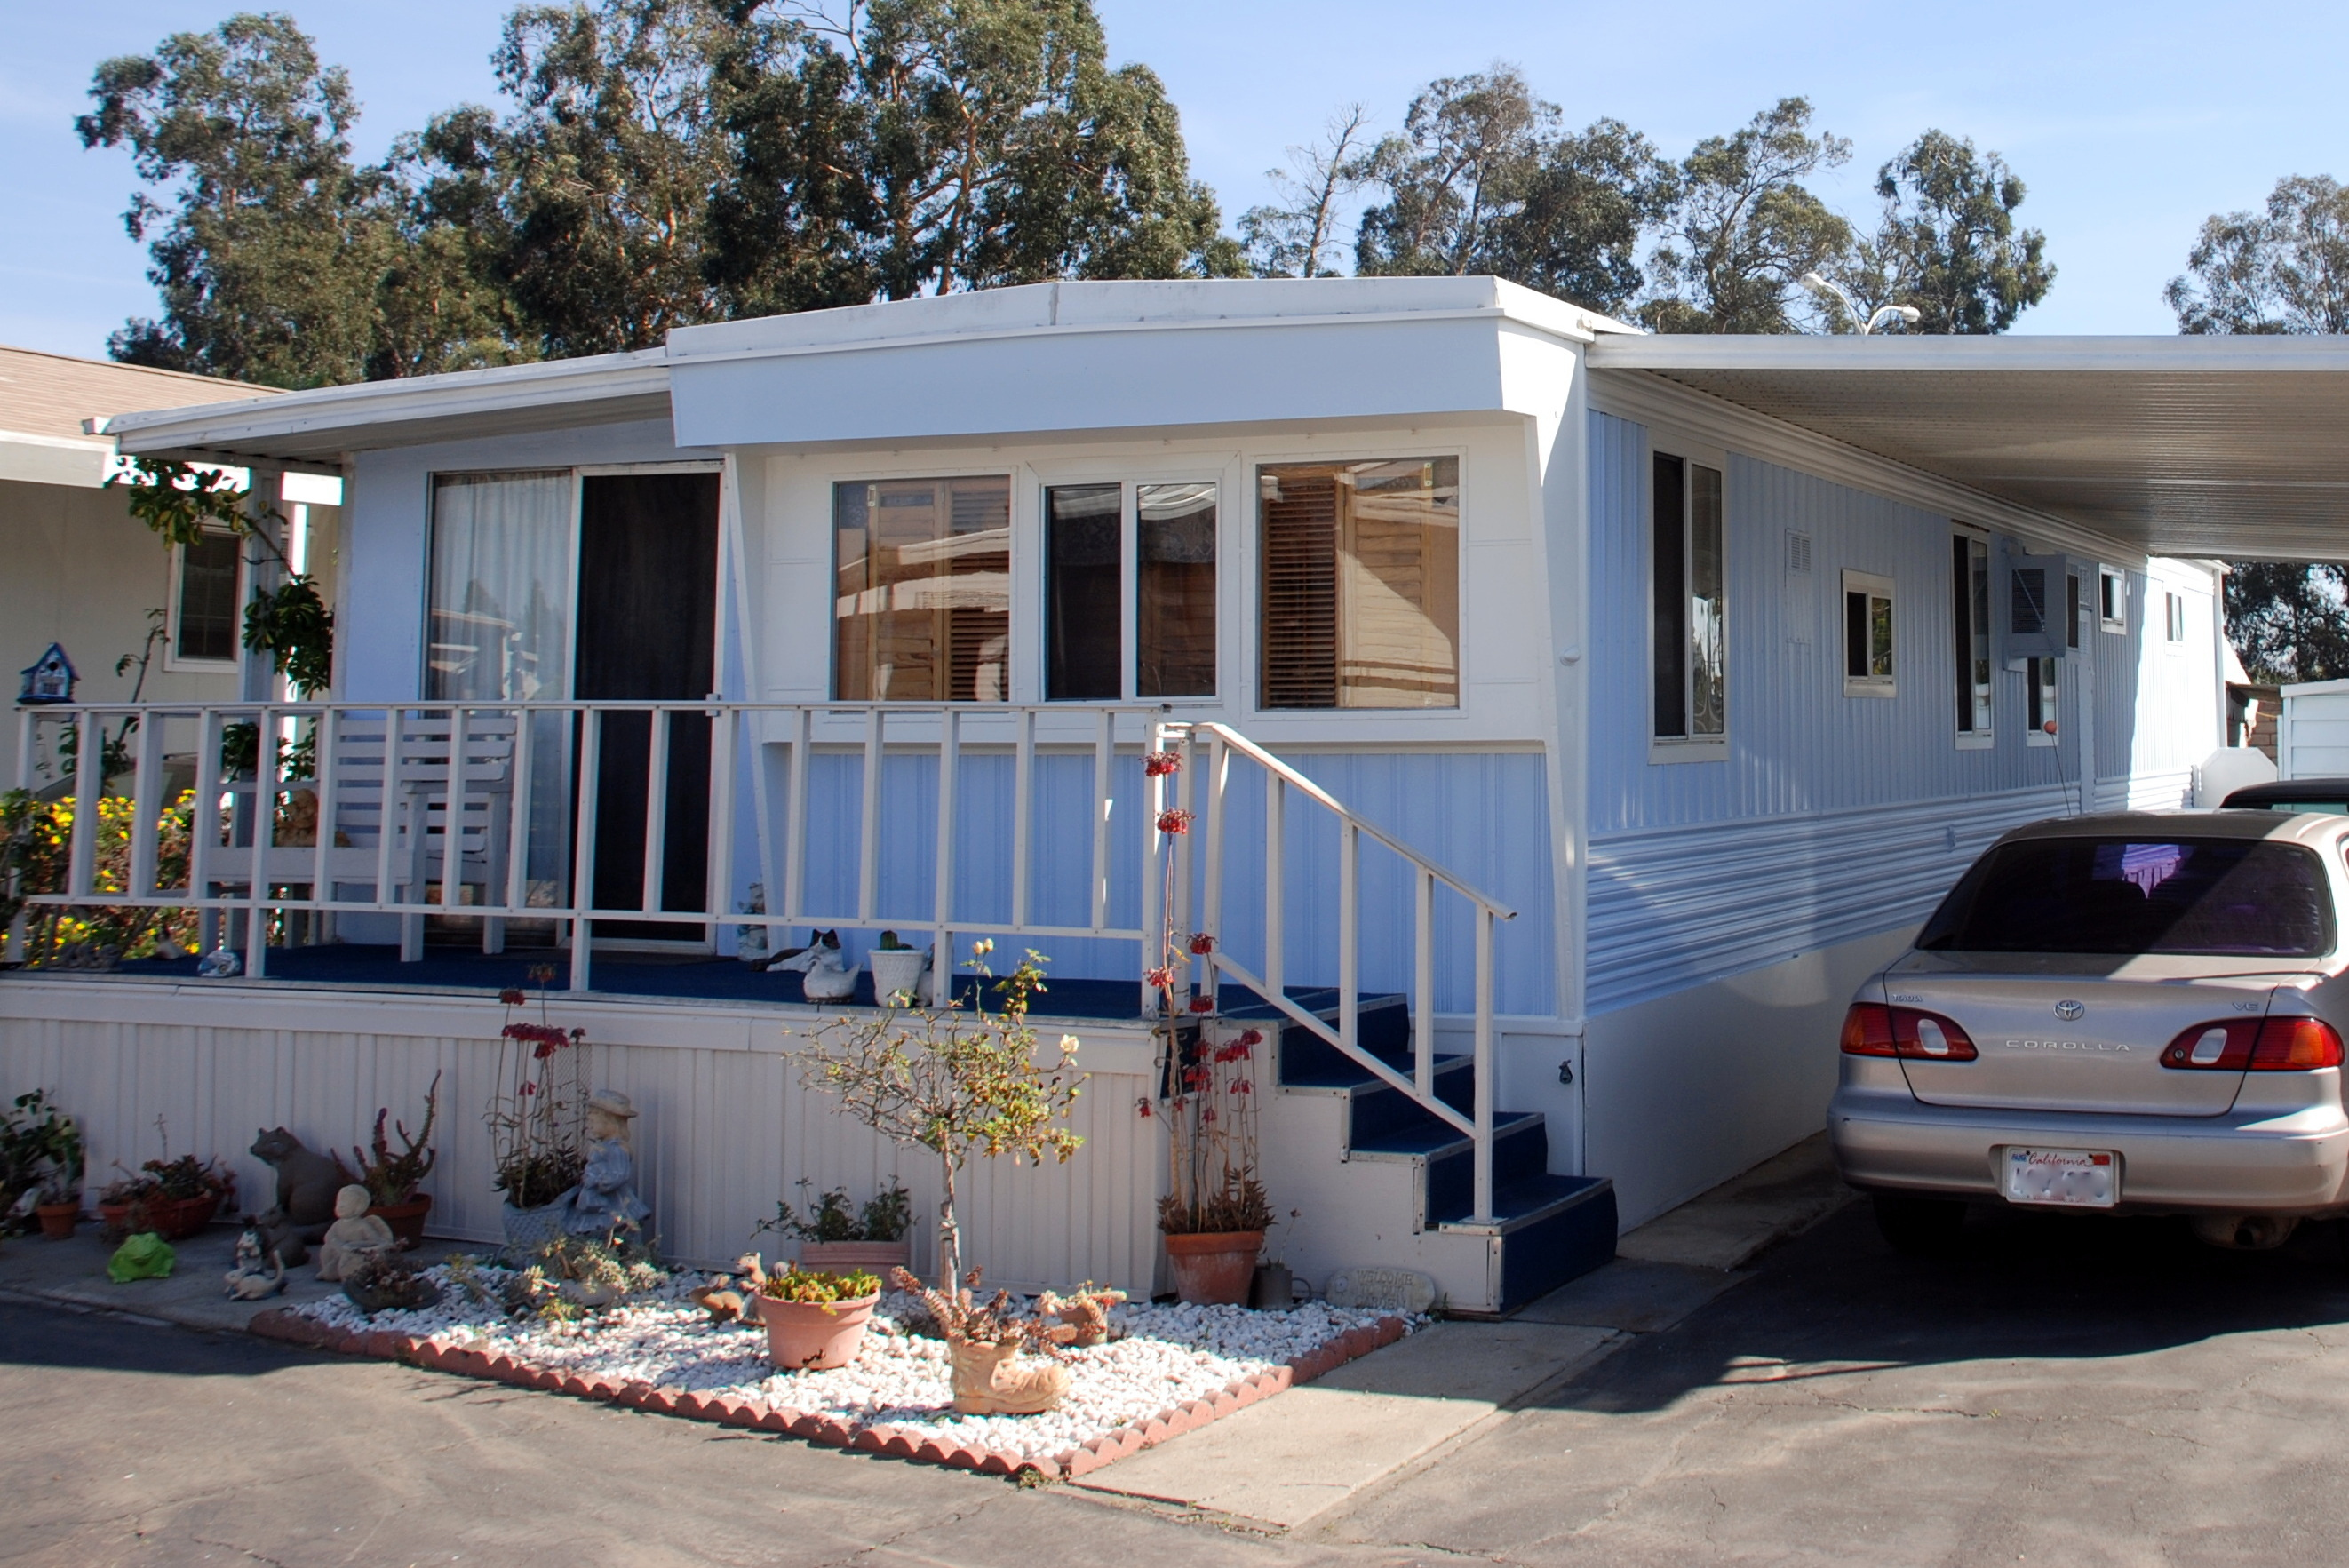 Best Paint For Mobile Home Exterior Mobile Home Exterior Paint Custom With Picture Of Mobile